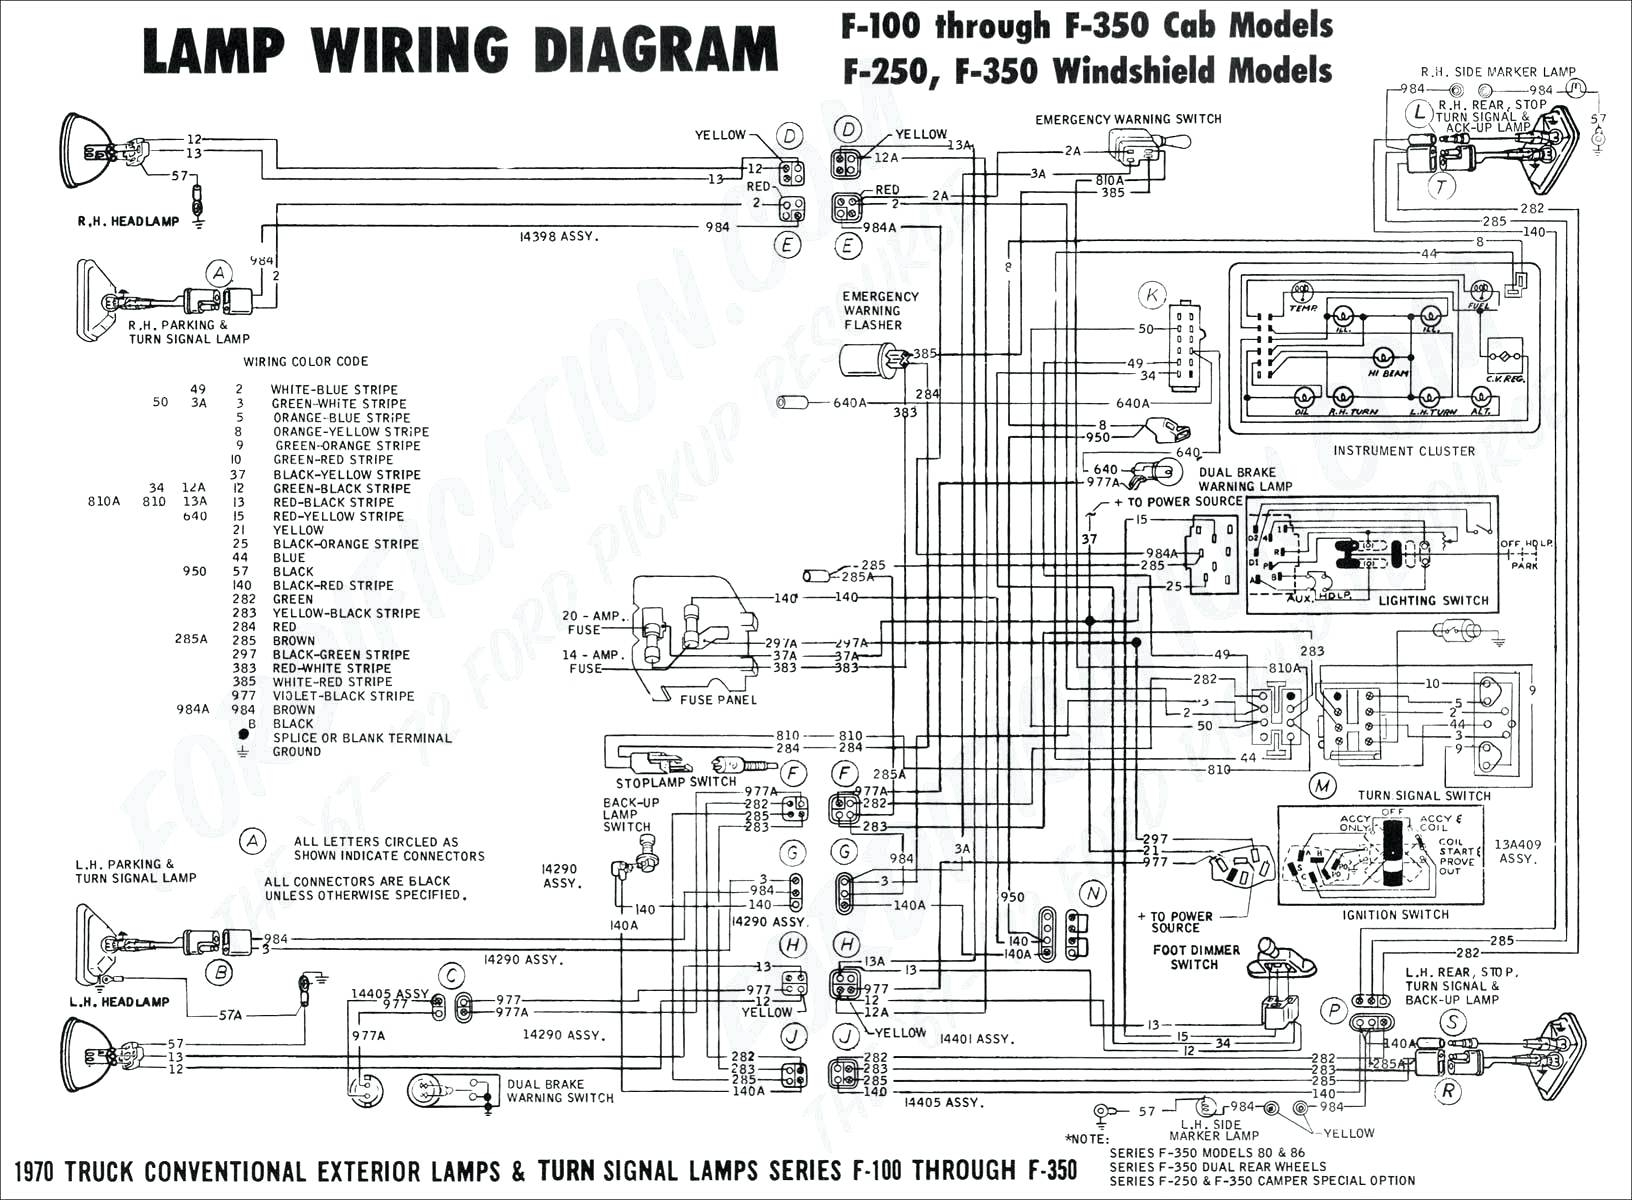 bathroom lights and wiring diagram for vent ford f250 trailer wiring harness diagram | free wiring diagram 18 free schematic and wiring diagram for f250 trailer